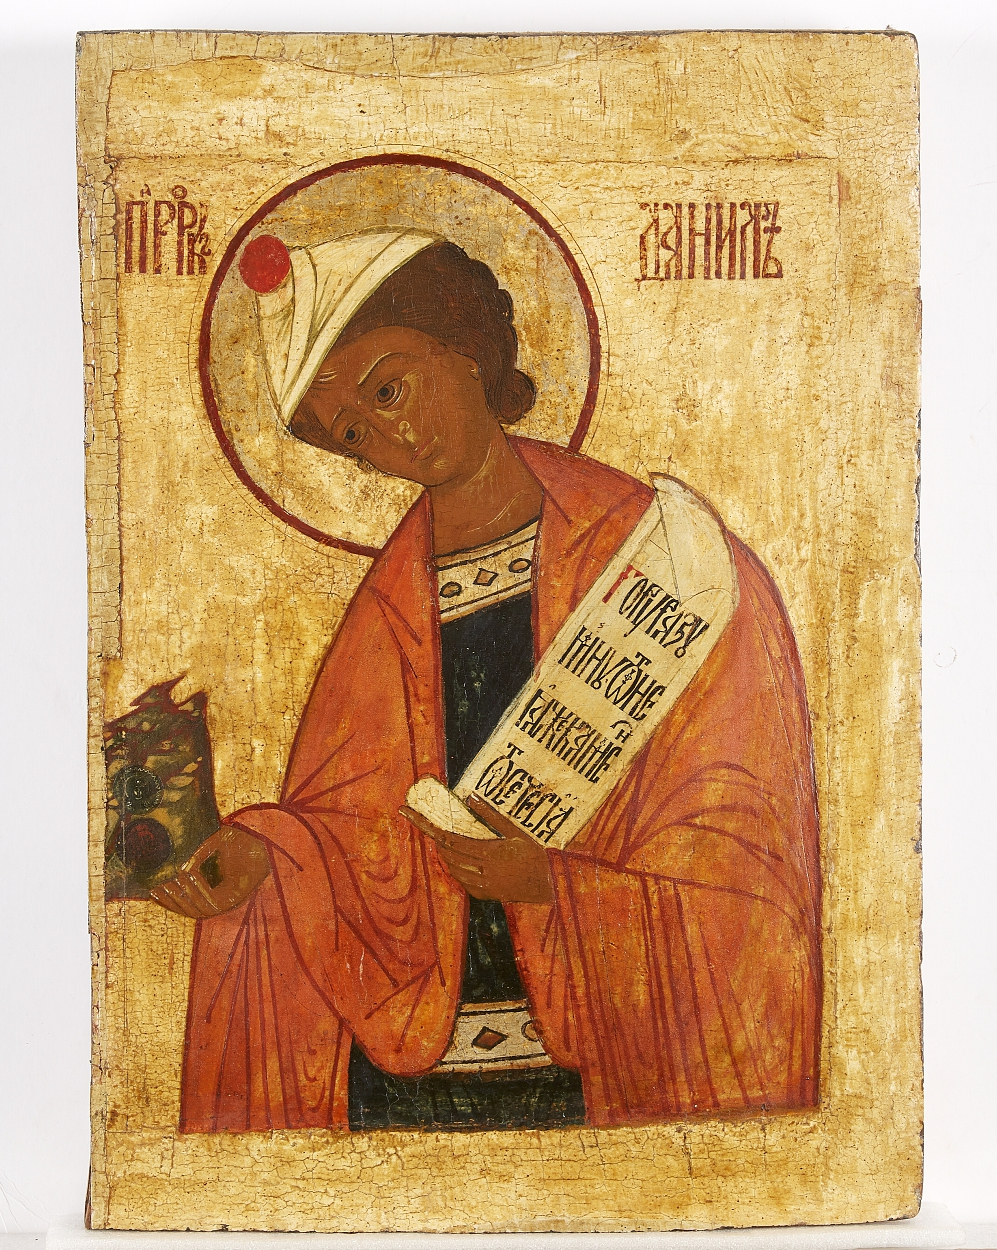 A Russian icon of Daniel the Prophet, 16th century